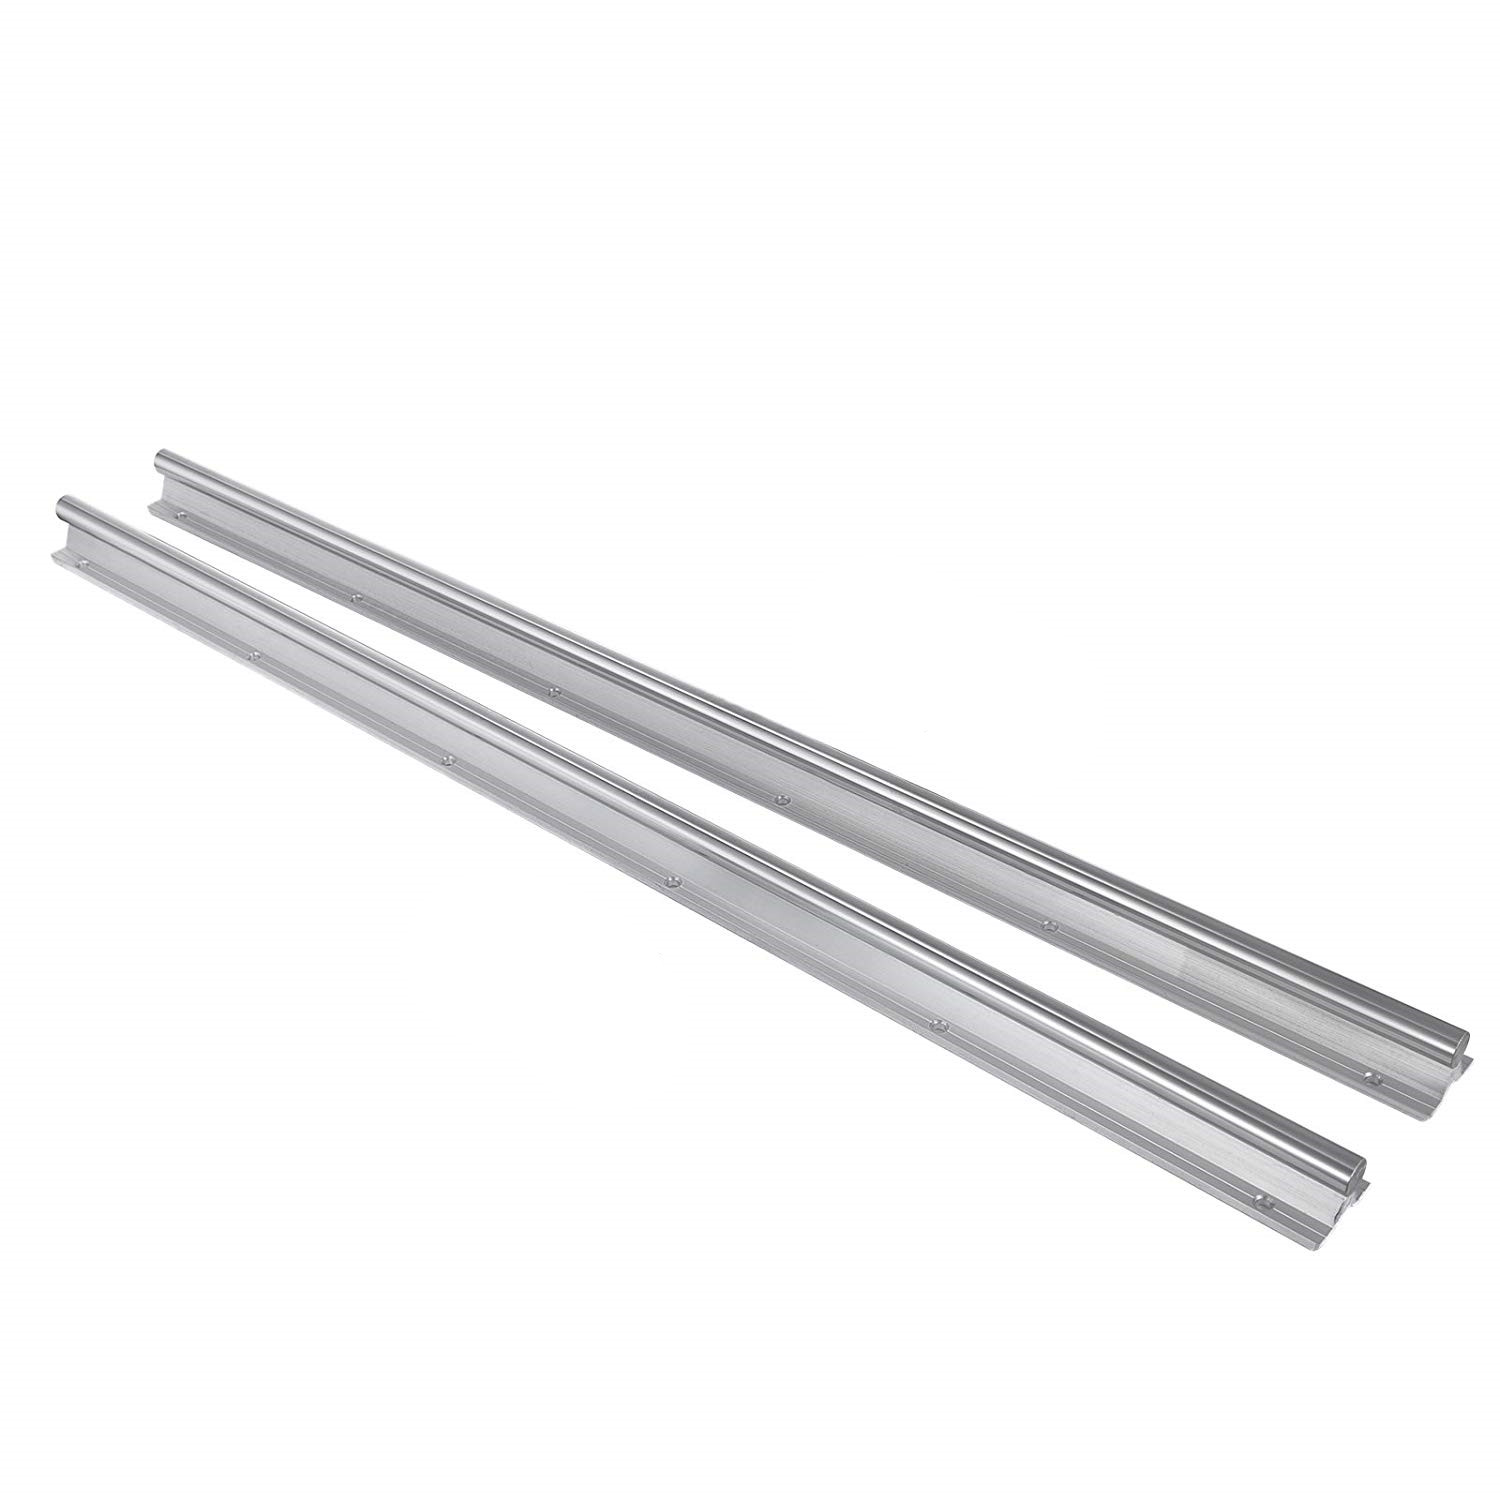 2Pcs guide SBR25-600 800 1000 1200 1500mm Linear Rail Brand New Free Shipping Shaft Rod AU Stock 10pcs free shipping bt136 800e bt136 bt136 800 800v 4a triacs rail triac to 220 new original